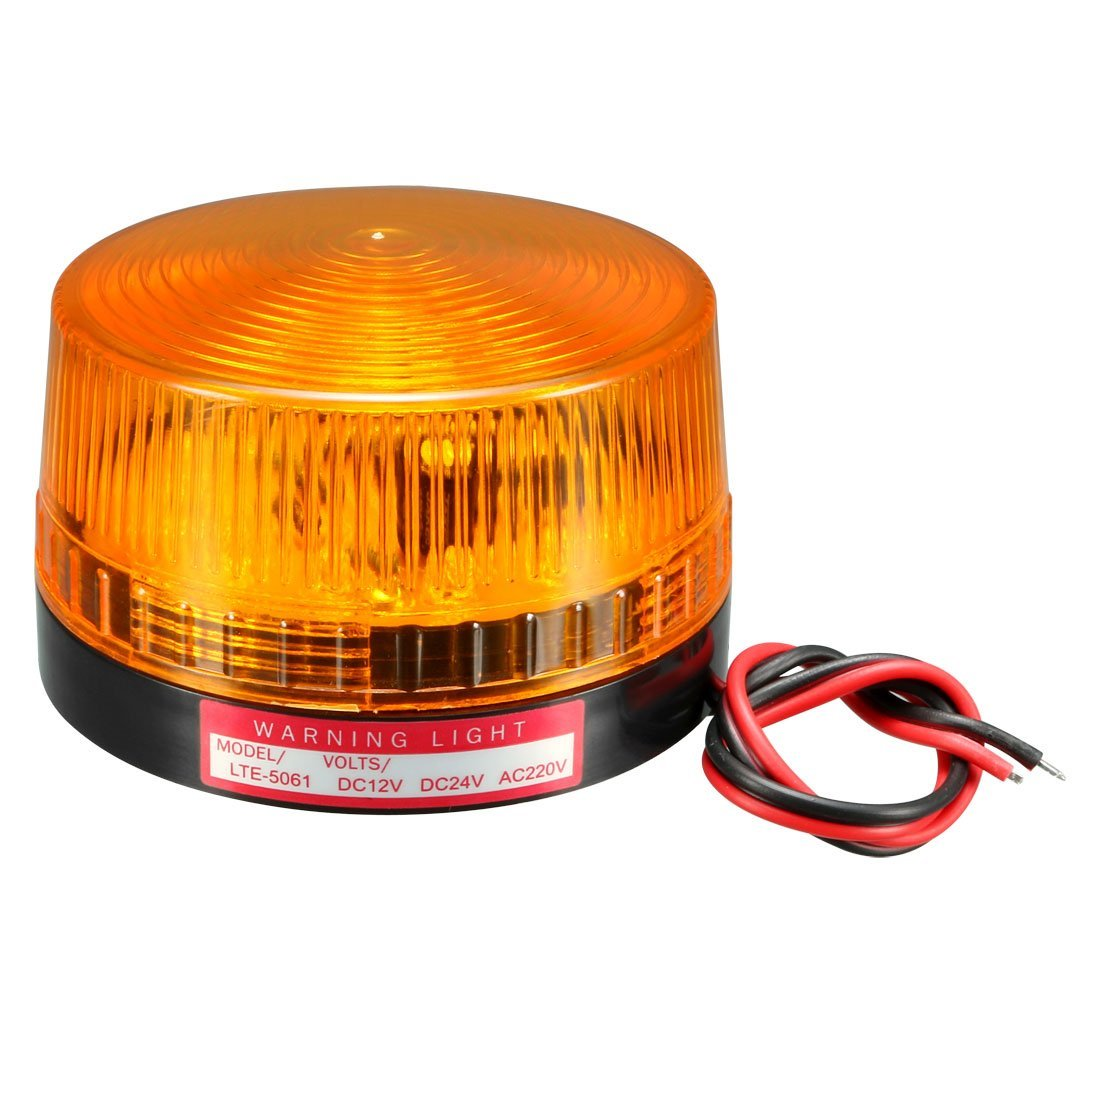 uxcell LED Warning Light Bulb Rotating Industrial Signal Tower Lamp DC 12V Yellow LTE-5061 a18042400ux0164